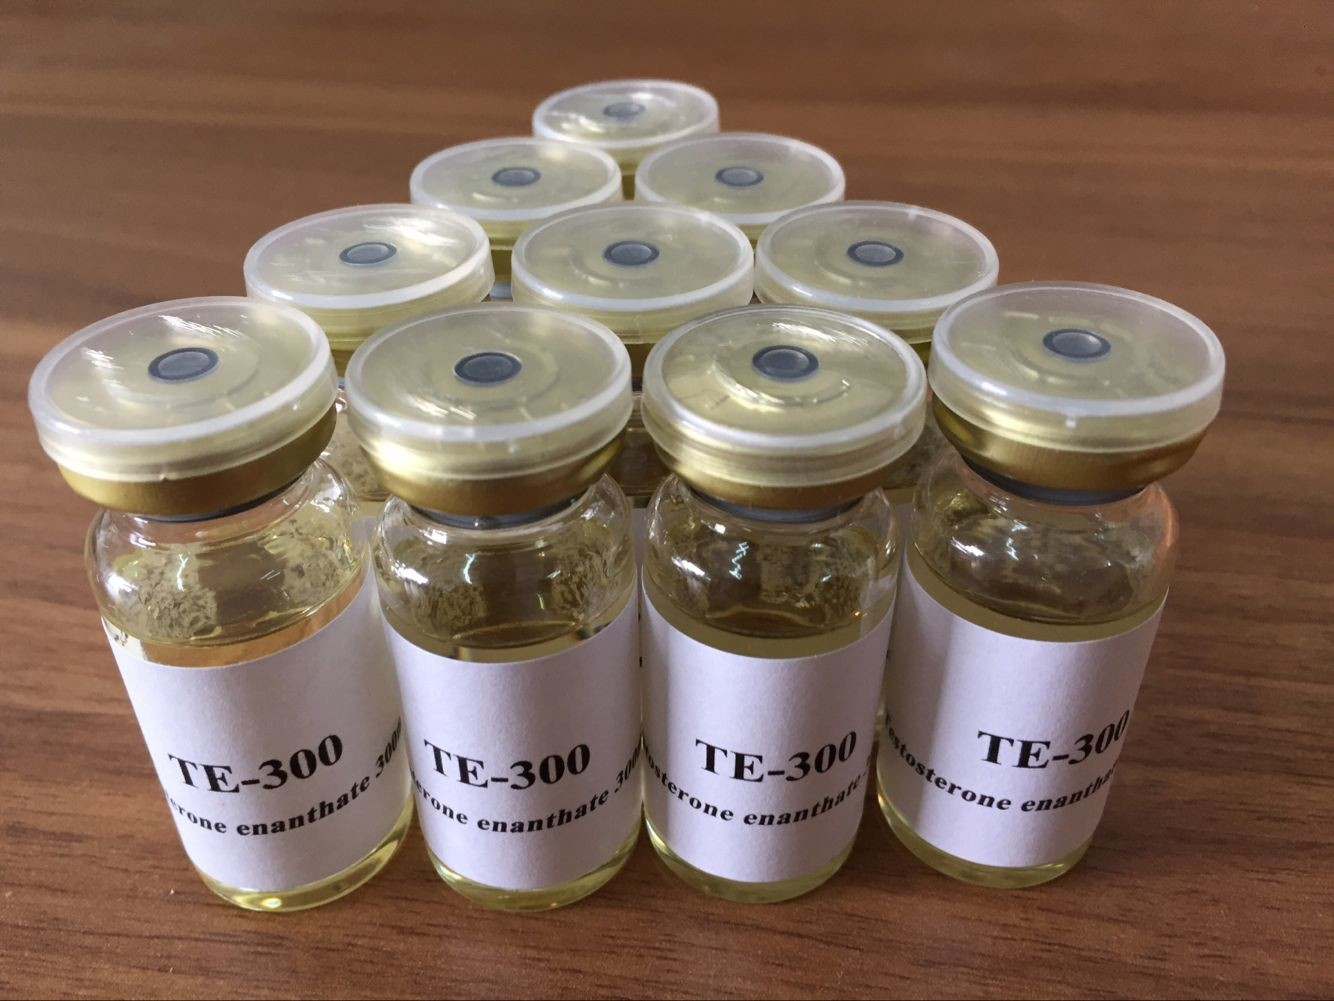 10ml/Vial Testosterone Enanthate Steroid building Oil 315-37-7 For Building Muscle